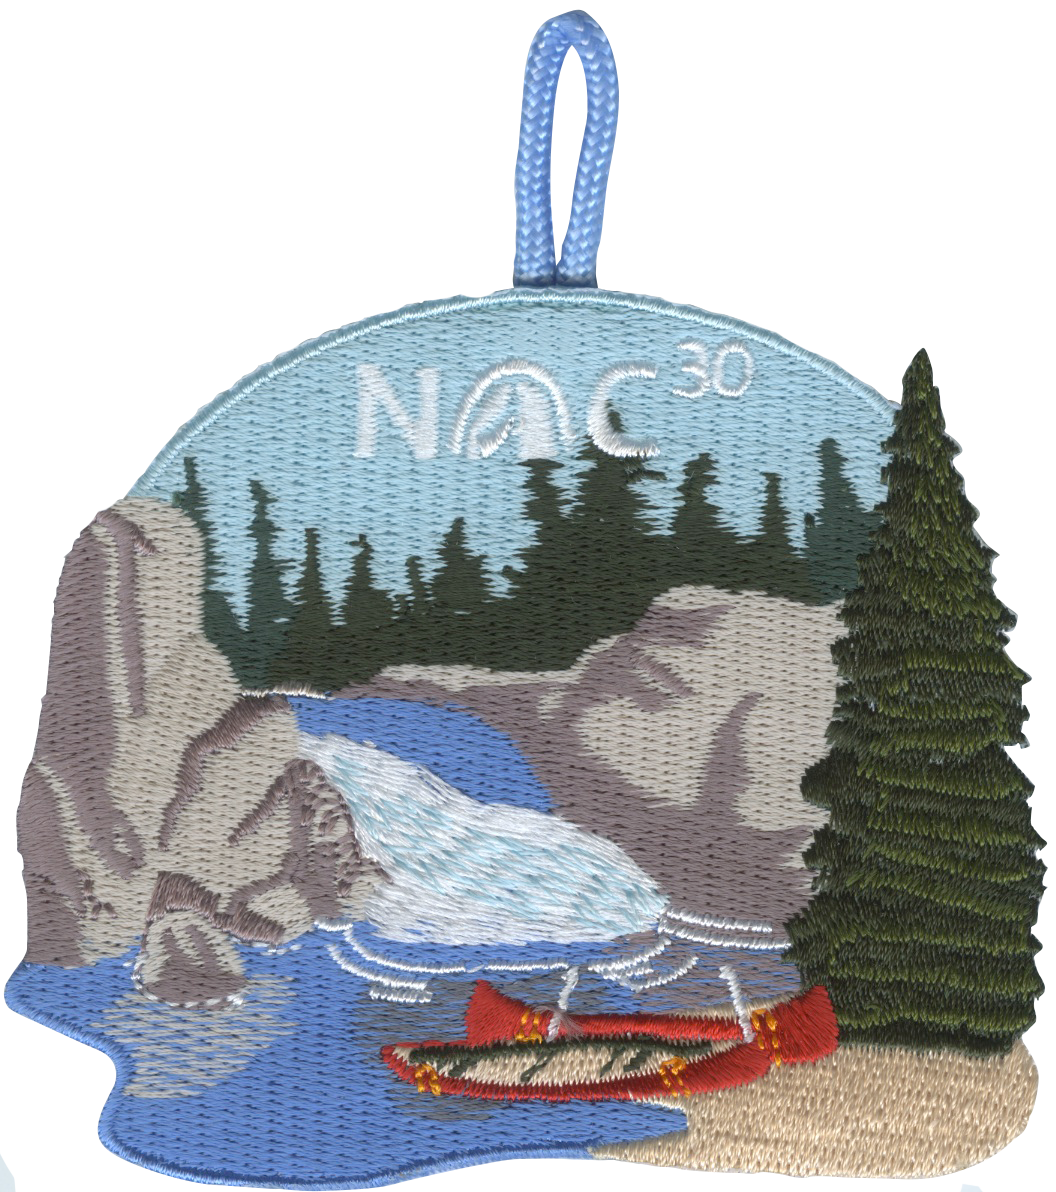 Nights of Camping NOC - 30 Night Patch